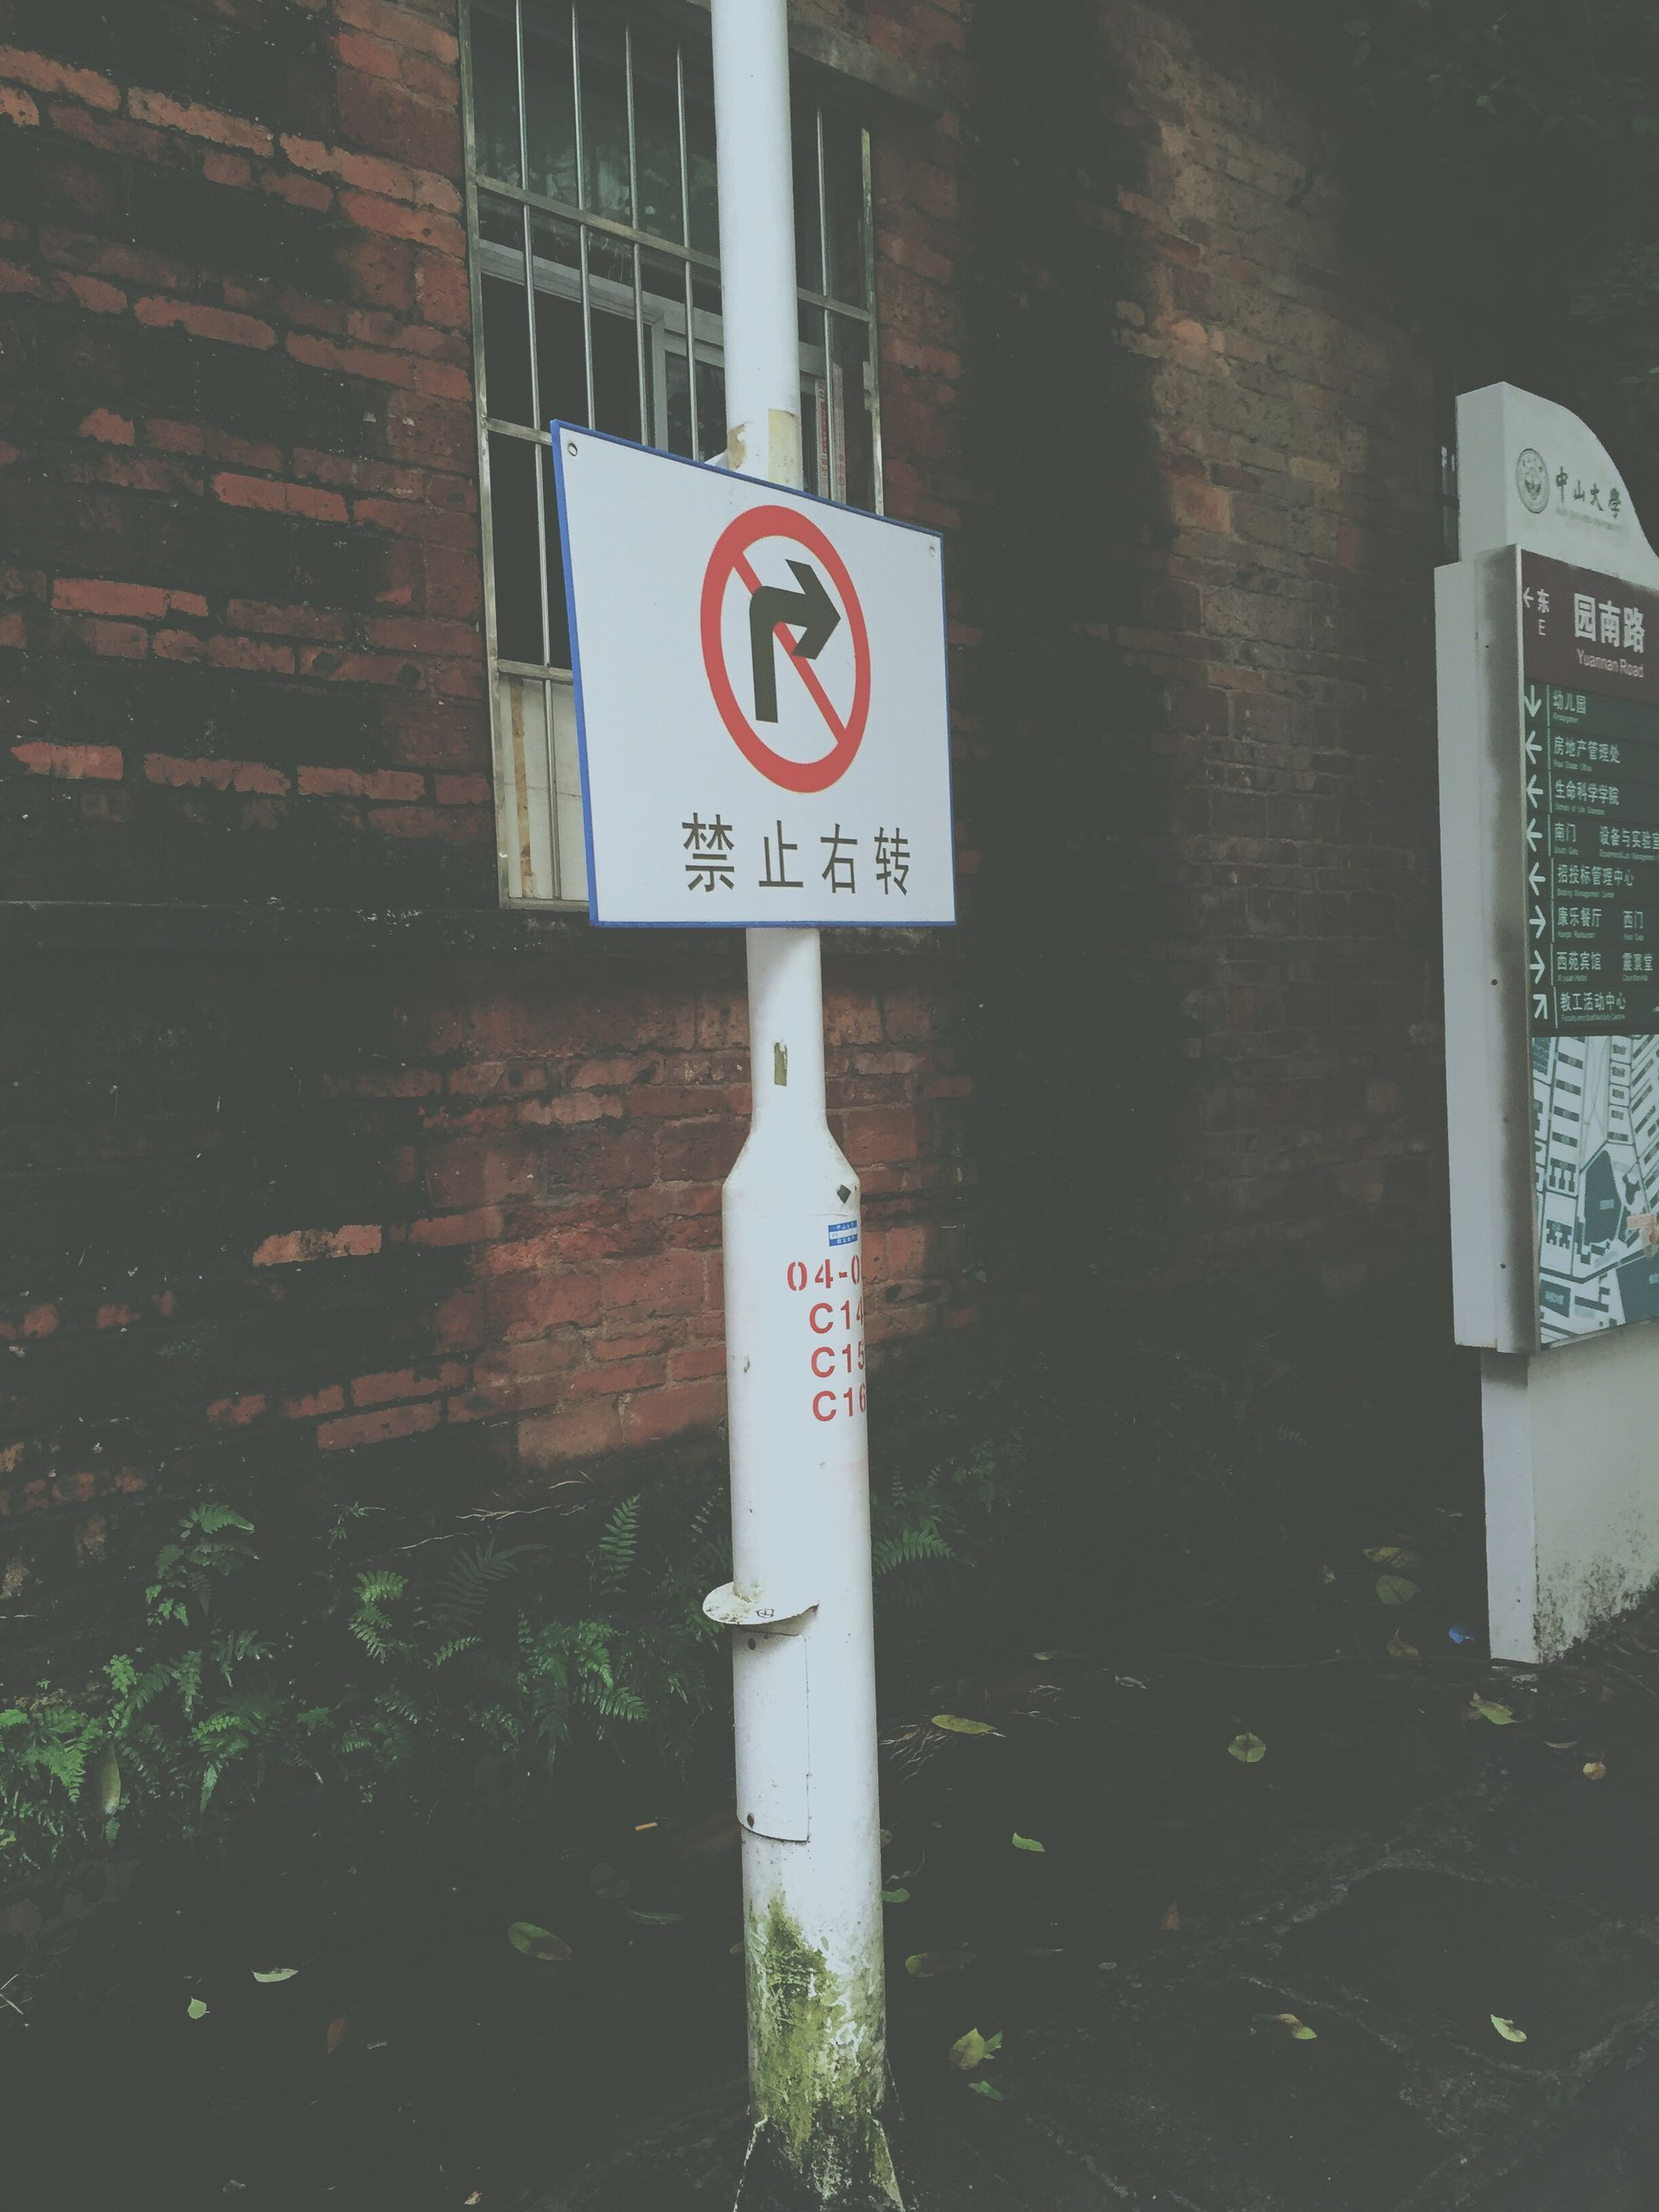 text, communication, western script, guidance, information sign, sign, road sign, warning sign, built structure, building exterior, architecture, safety, information, capital letter, direction, arrow symbol, directional sign, non-western script, protection, security